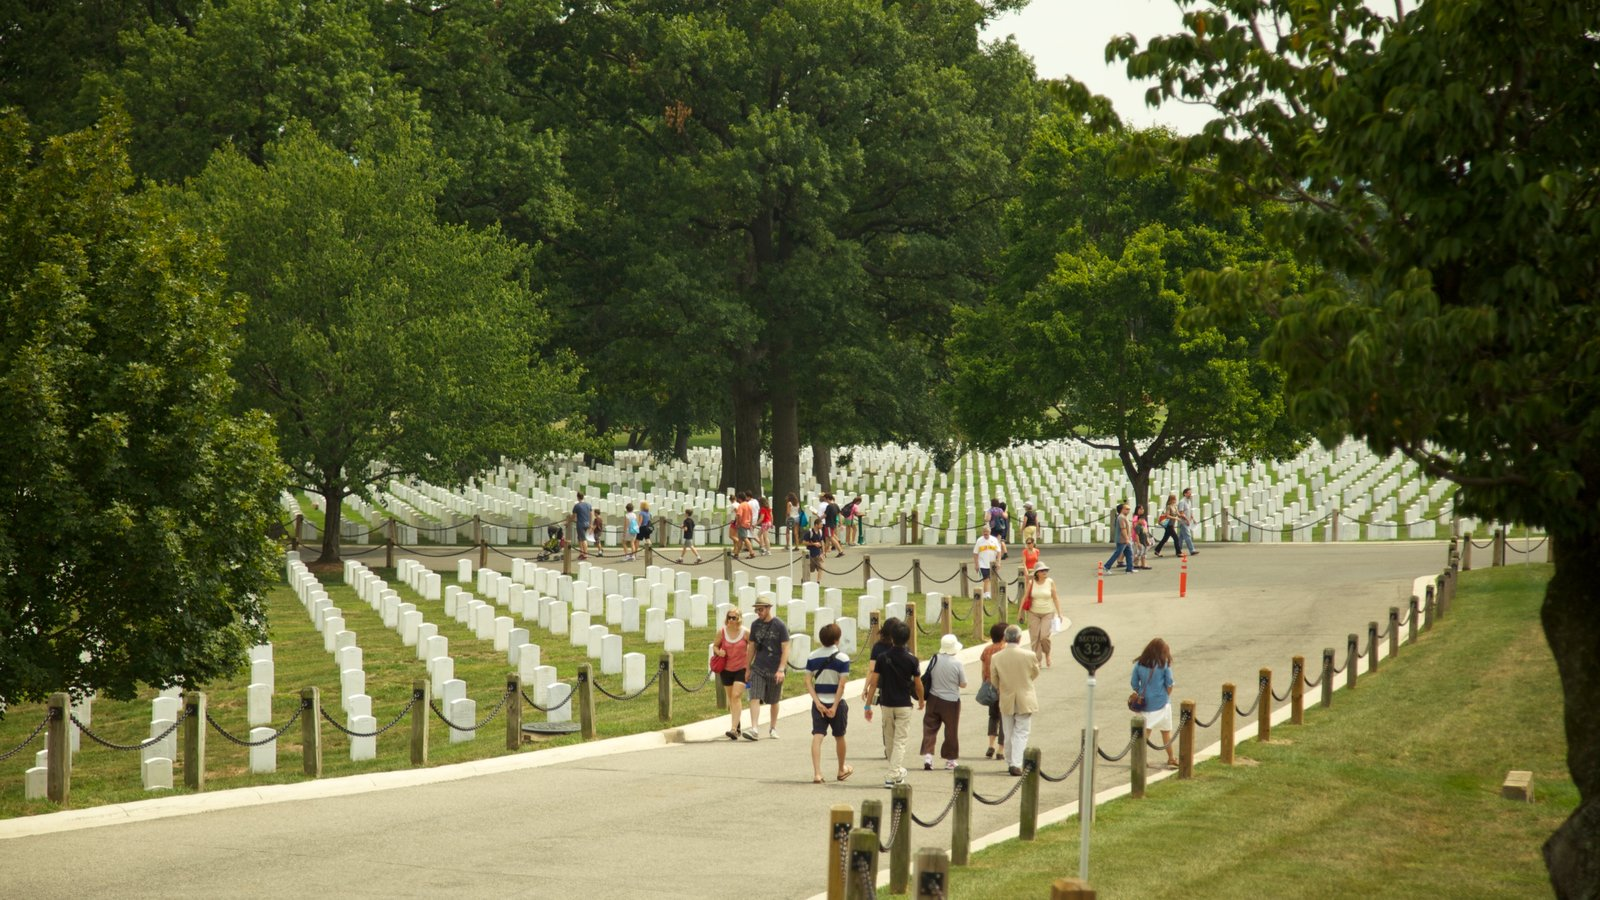 Arlington National Cemetery featuring a cemetery, landscape views and a memorial